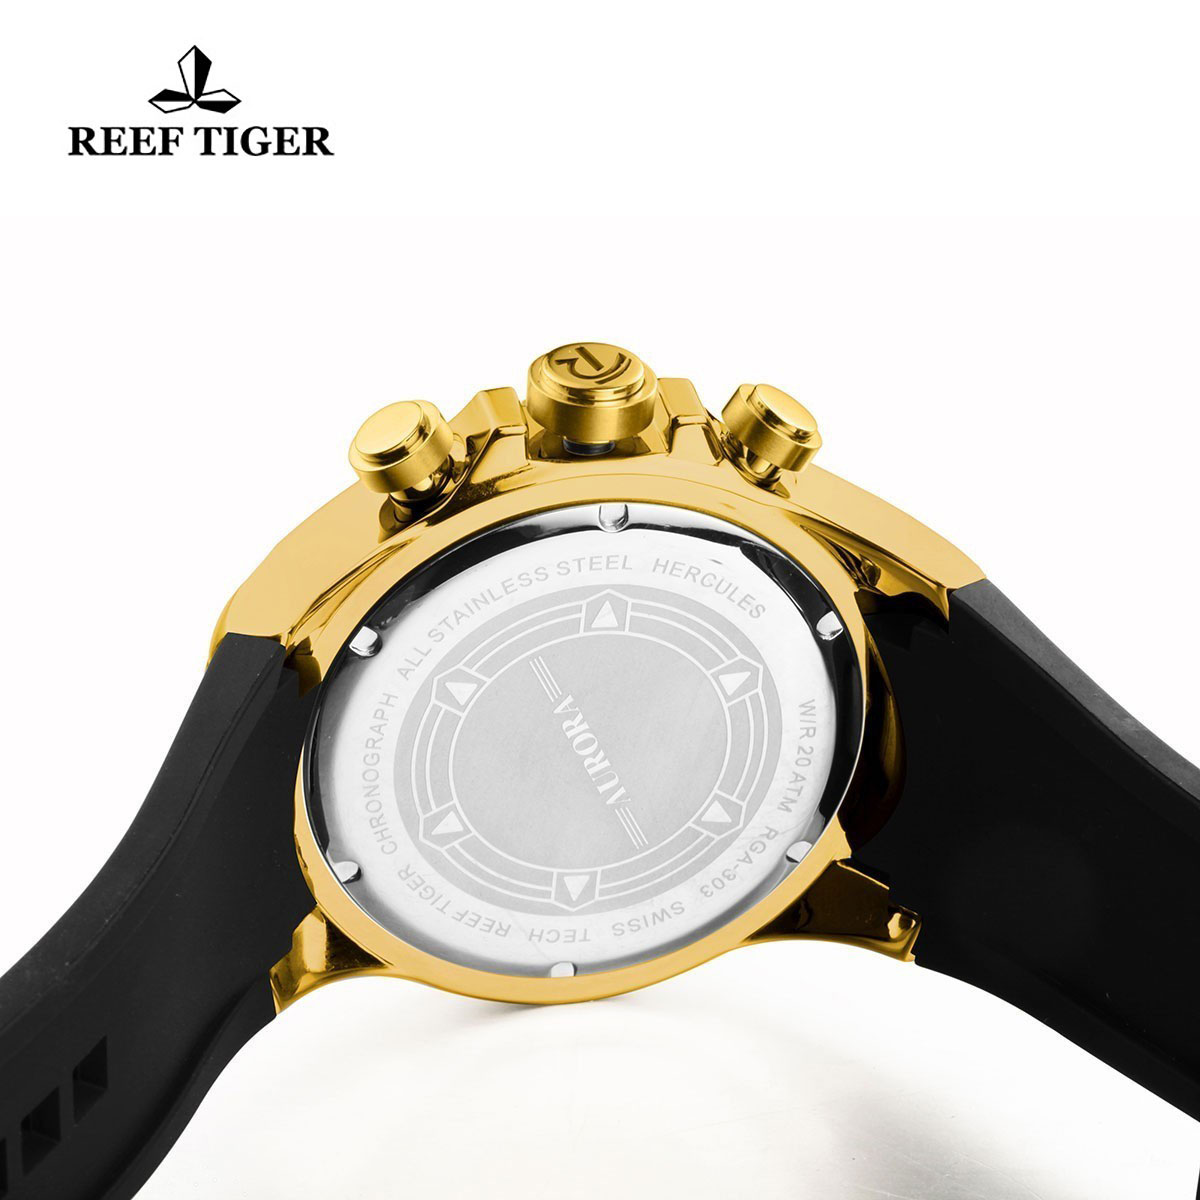 Reef Tiger Hercules Sport Watches Chronograph Yellow Gold Case Blue Dial Watch RGA303-YGL